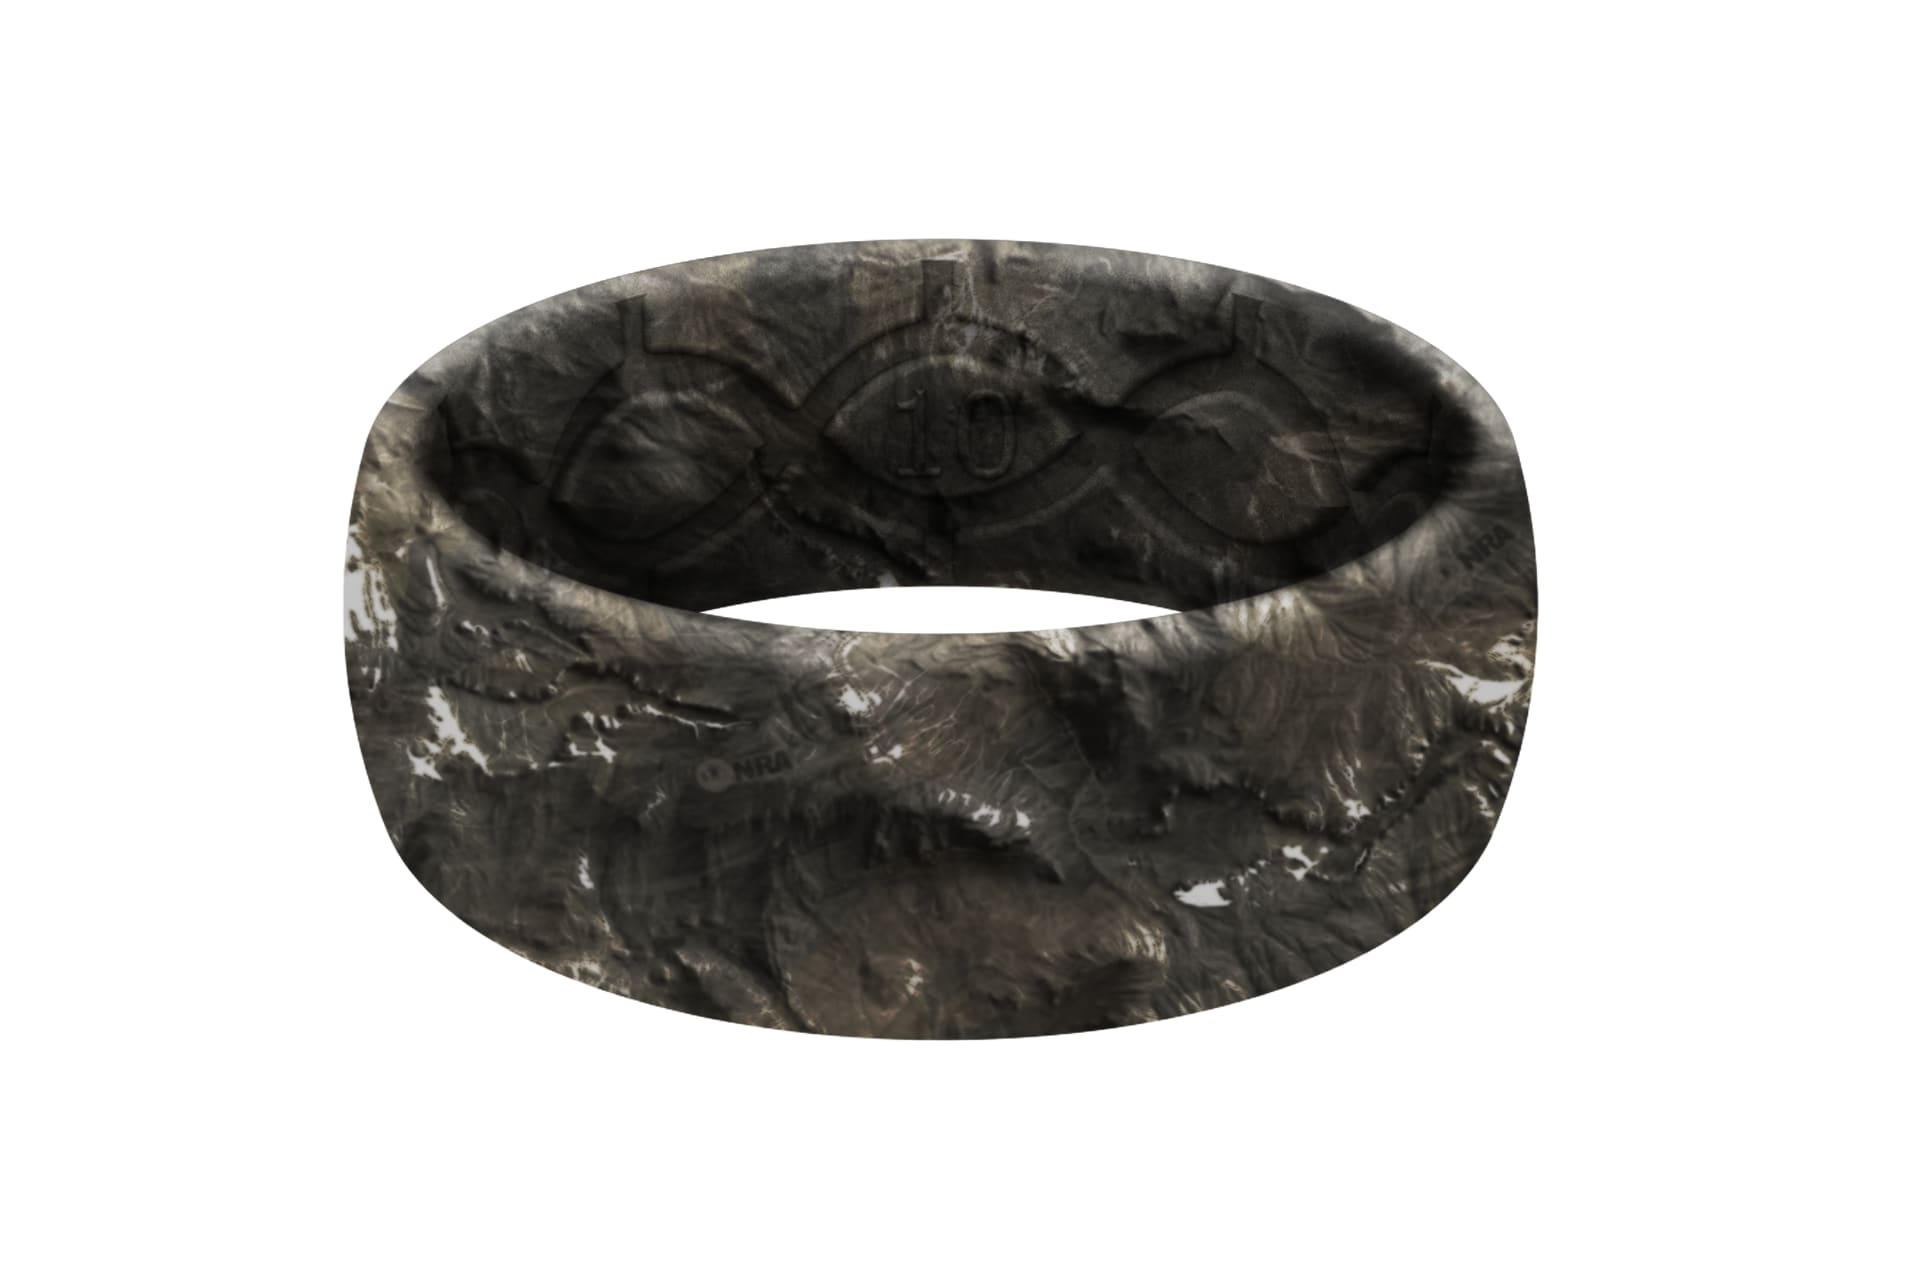 Mossy Oak NRA Overwatch Camo Original ring viewed front on